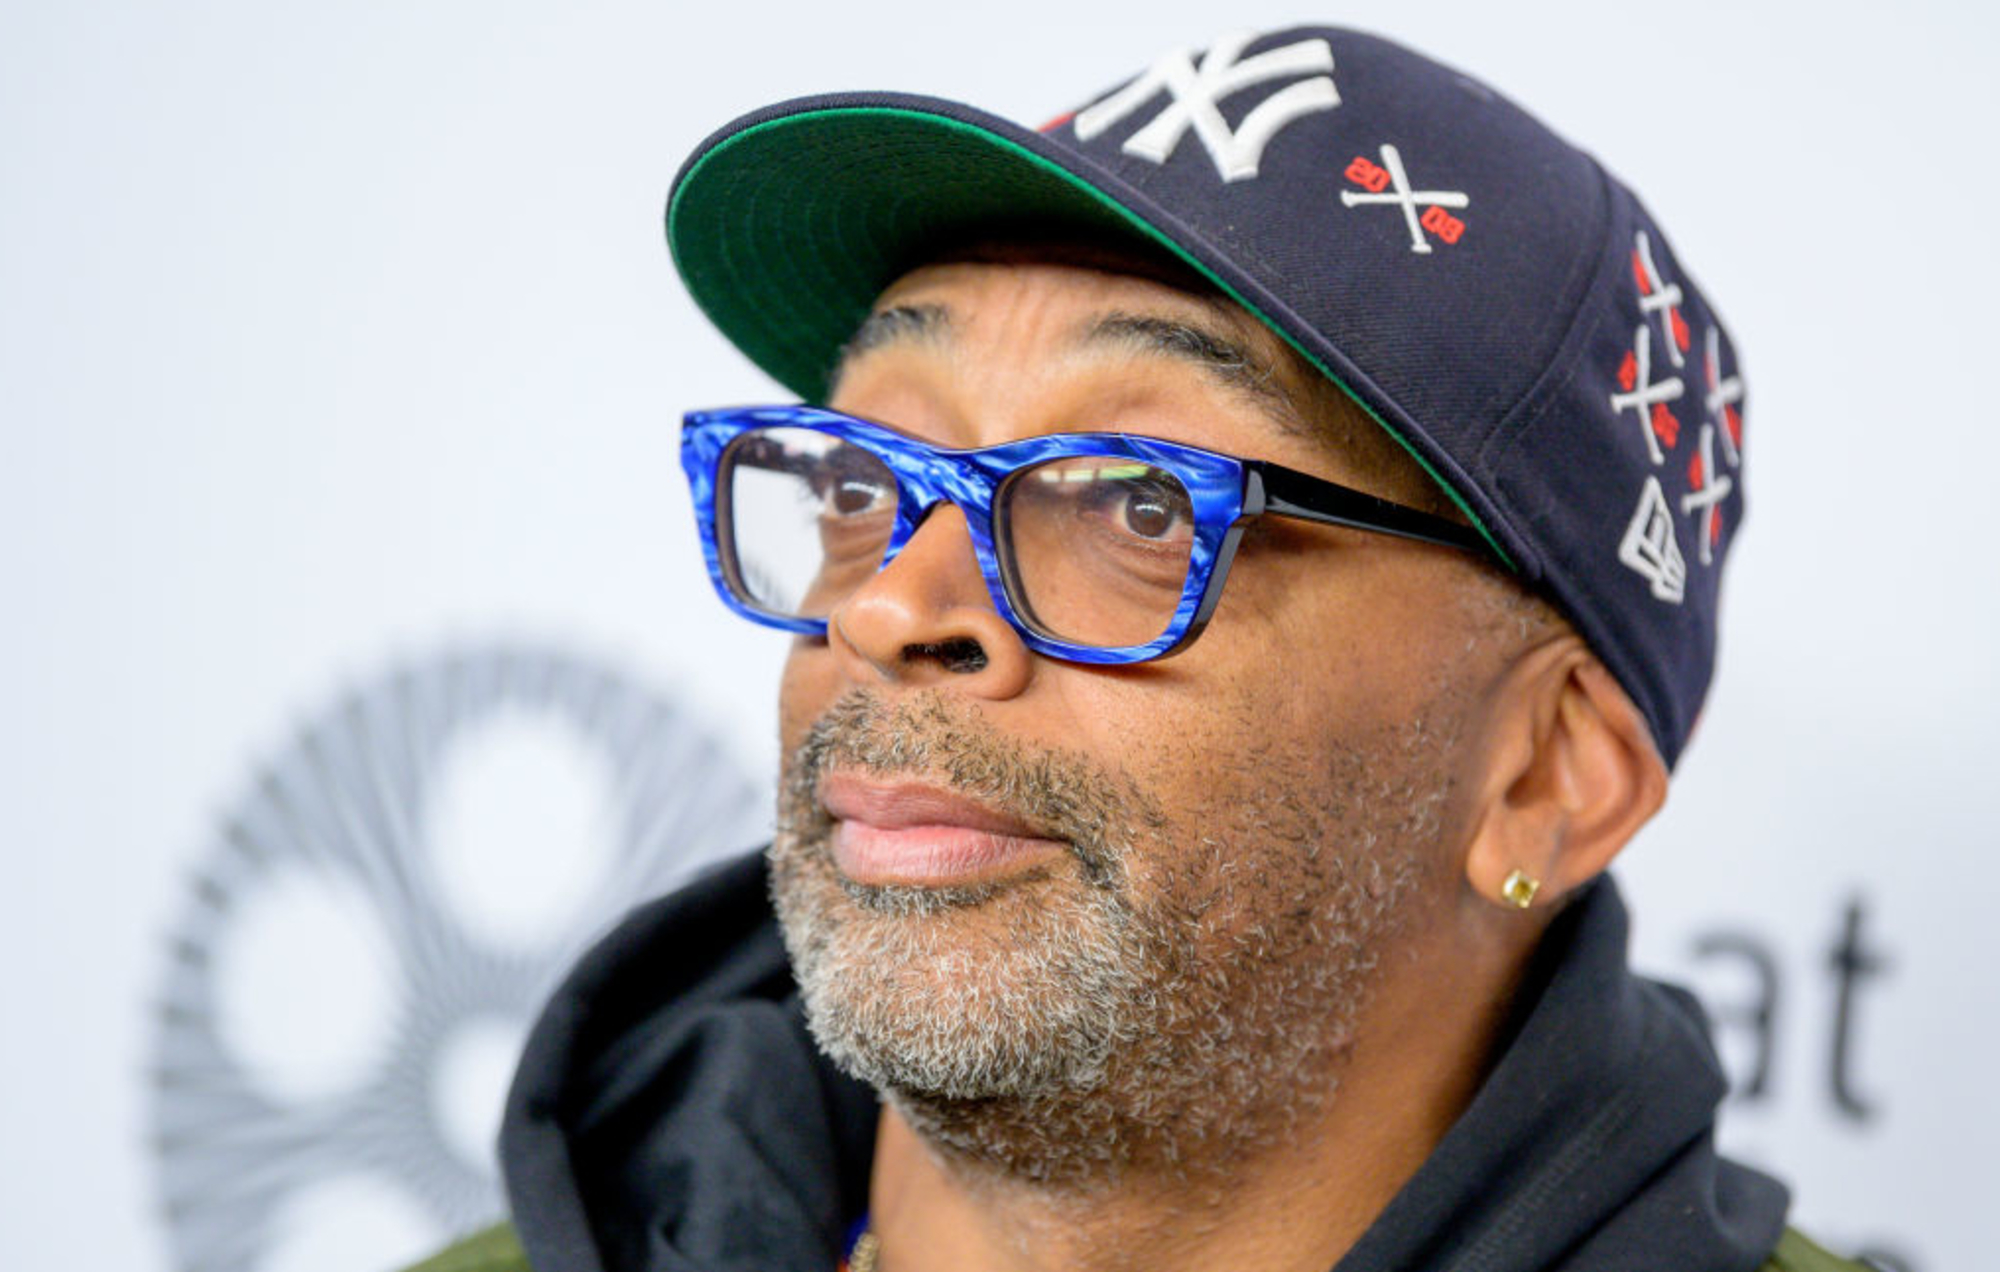 Spike Lee releases quick movie about police brutality in wake of George Floyd lack of life 2